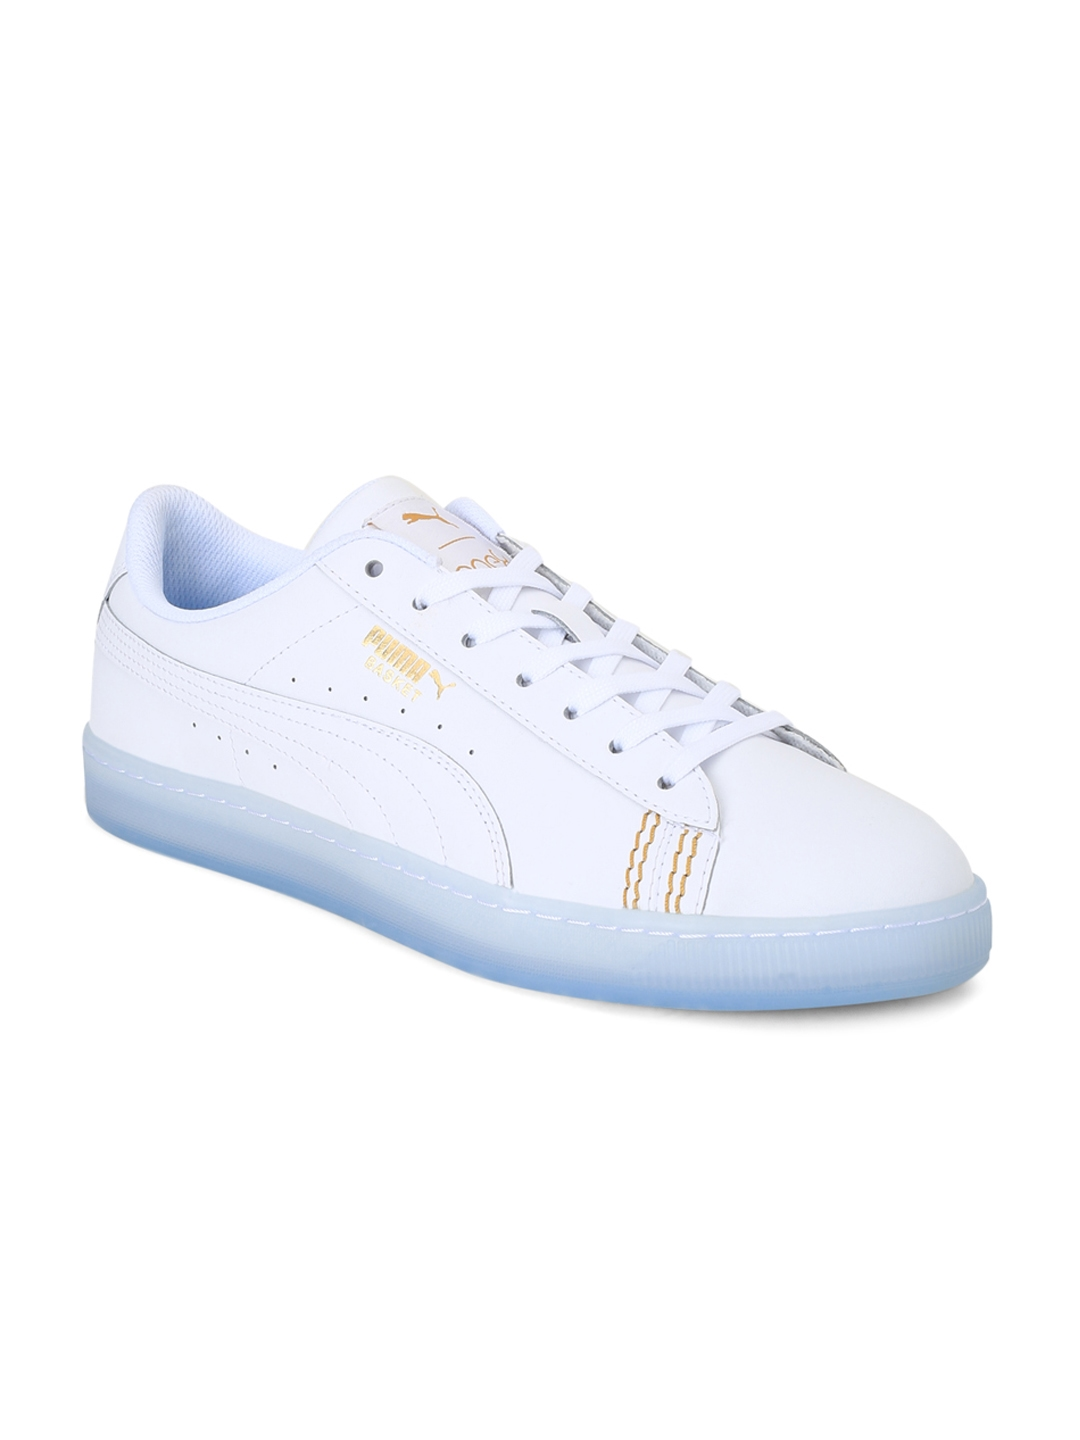 huge discount 70faf 0c919 Puma Unisex White One8 Basket Classic Sneakers